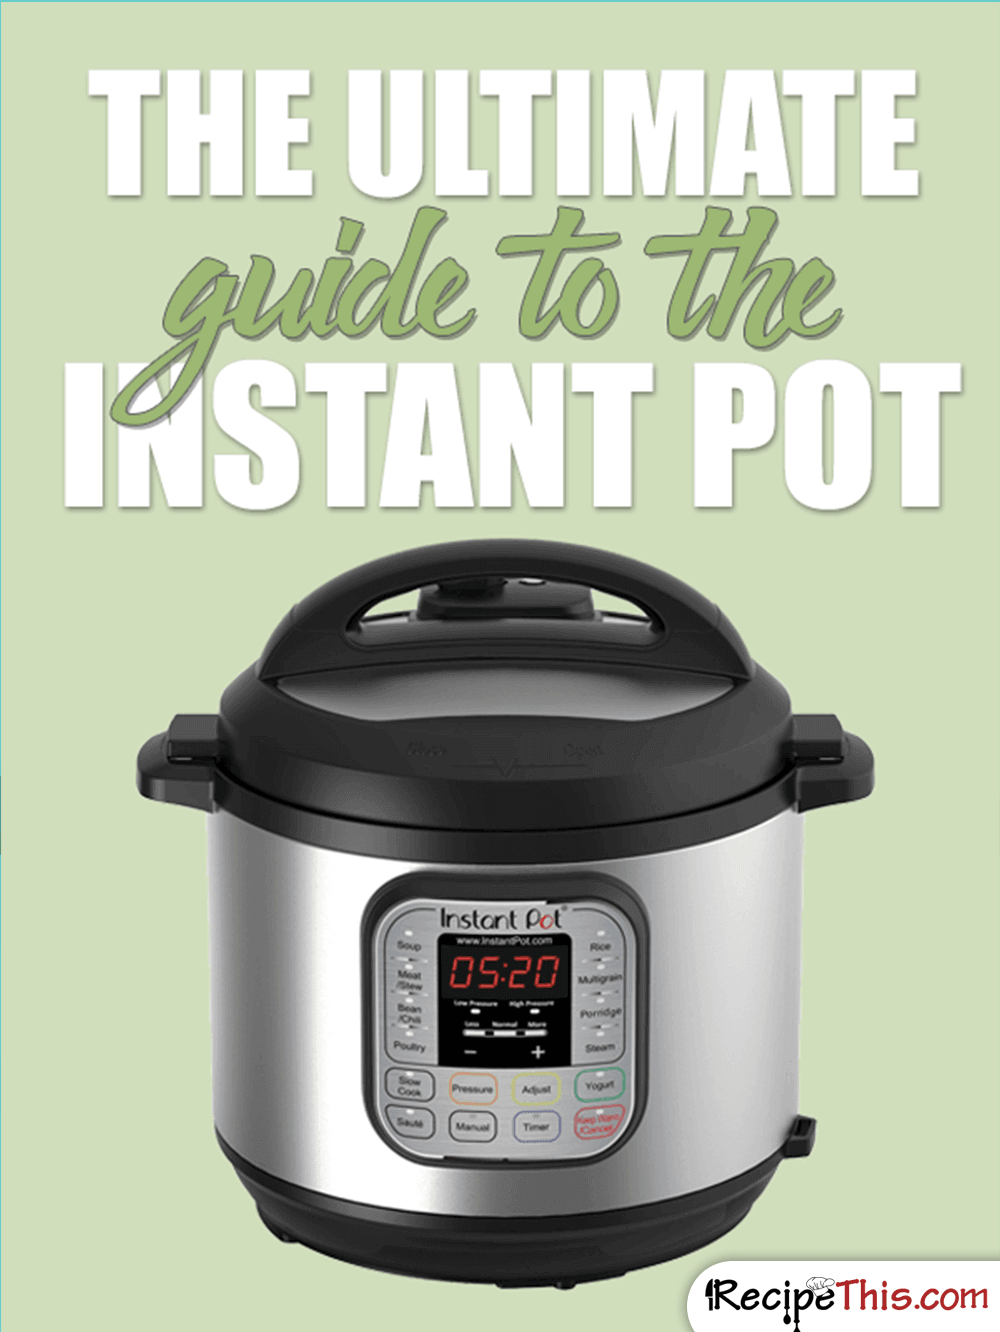 Instant Pot | The Ultimate Guide To The Instant Pot from RecipeThis.com